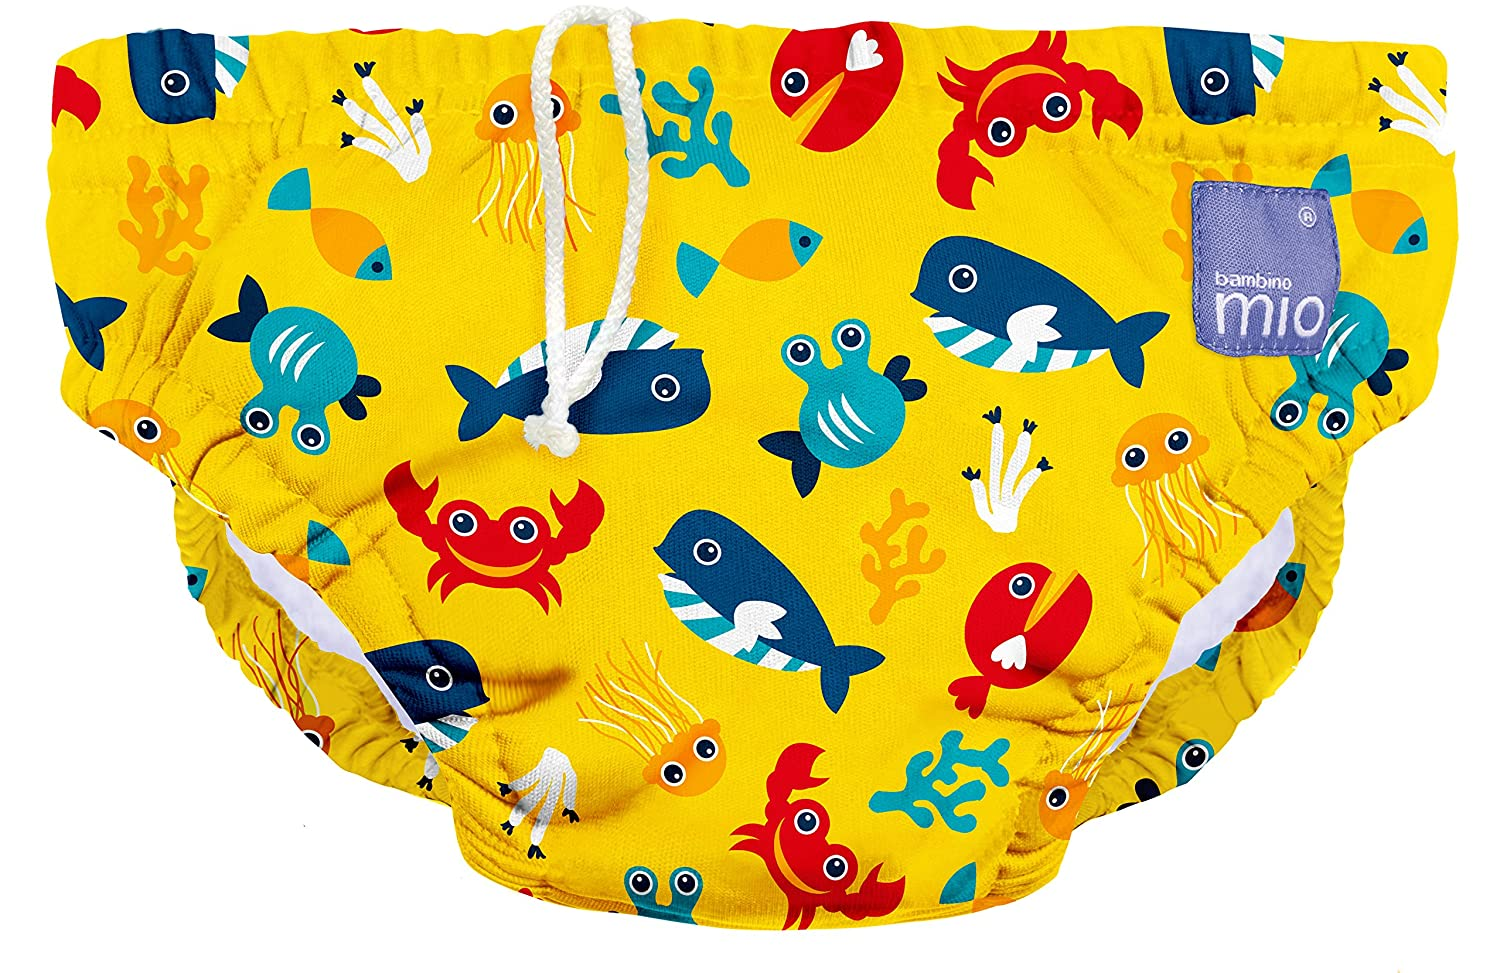 Bambino Mio, Culotte de Natation, Deep Sea Yellow, Medium (6-12 Mois) Culotte de Natation BB9Y1 SWPM DSY